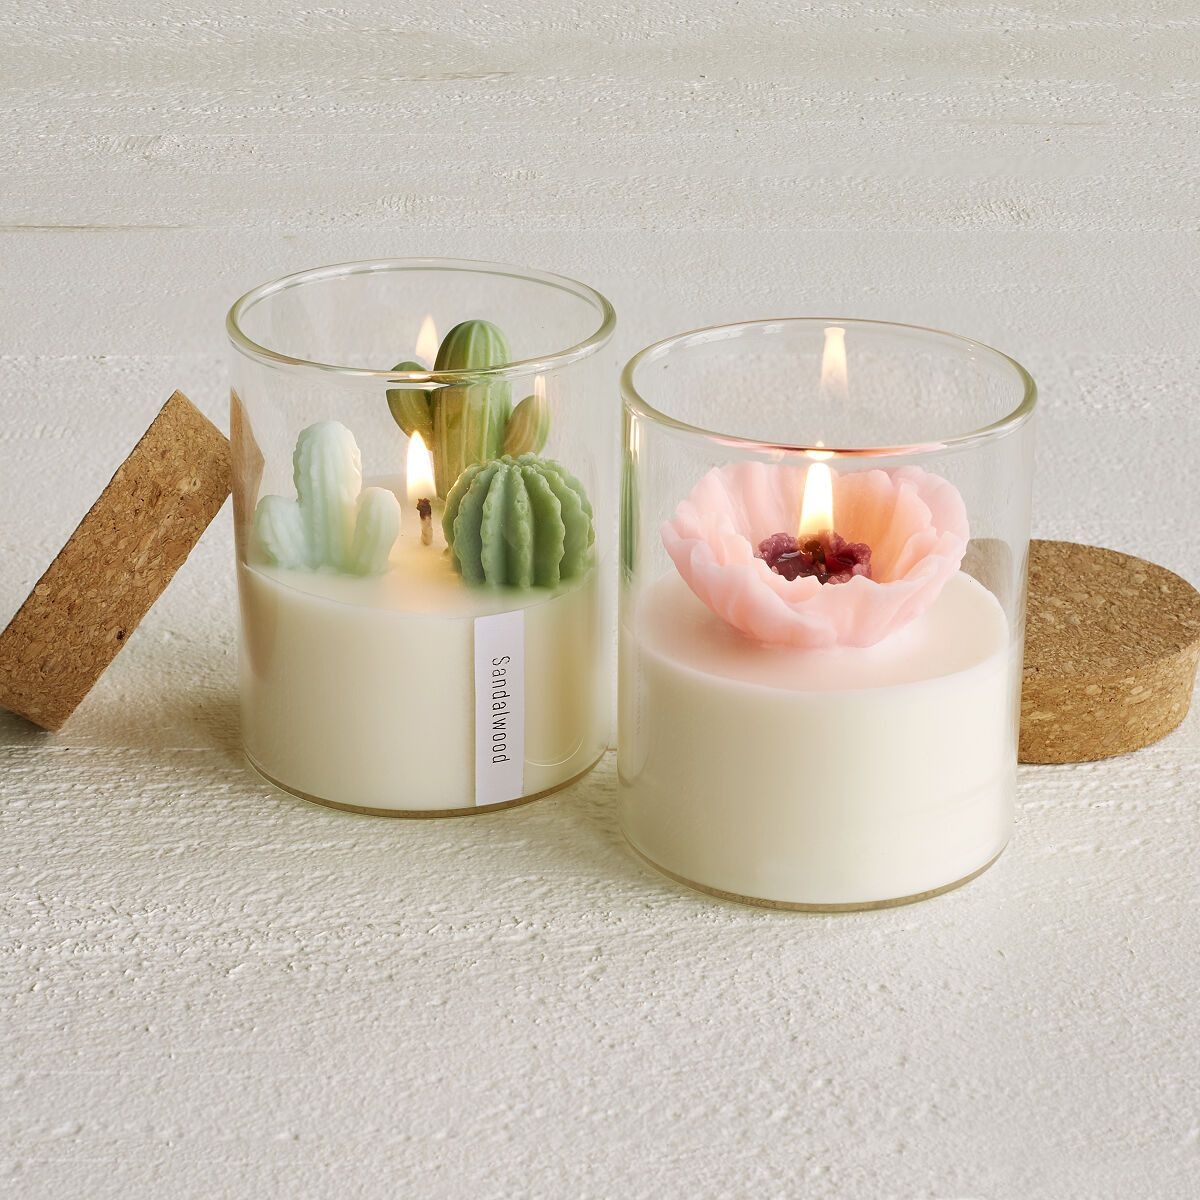 Best Candles For Gifts Candle Gift Set Ideas To Shop